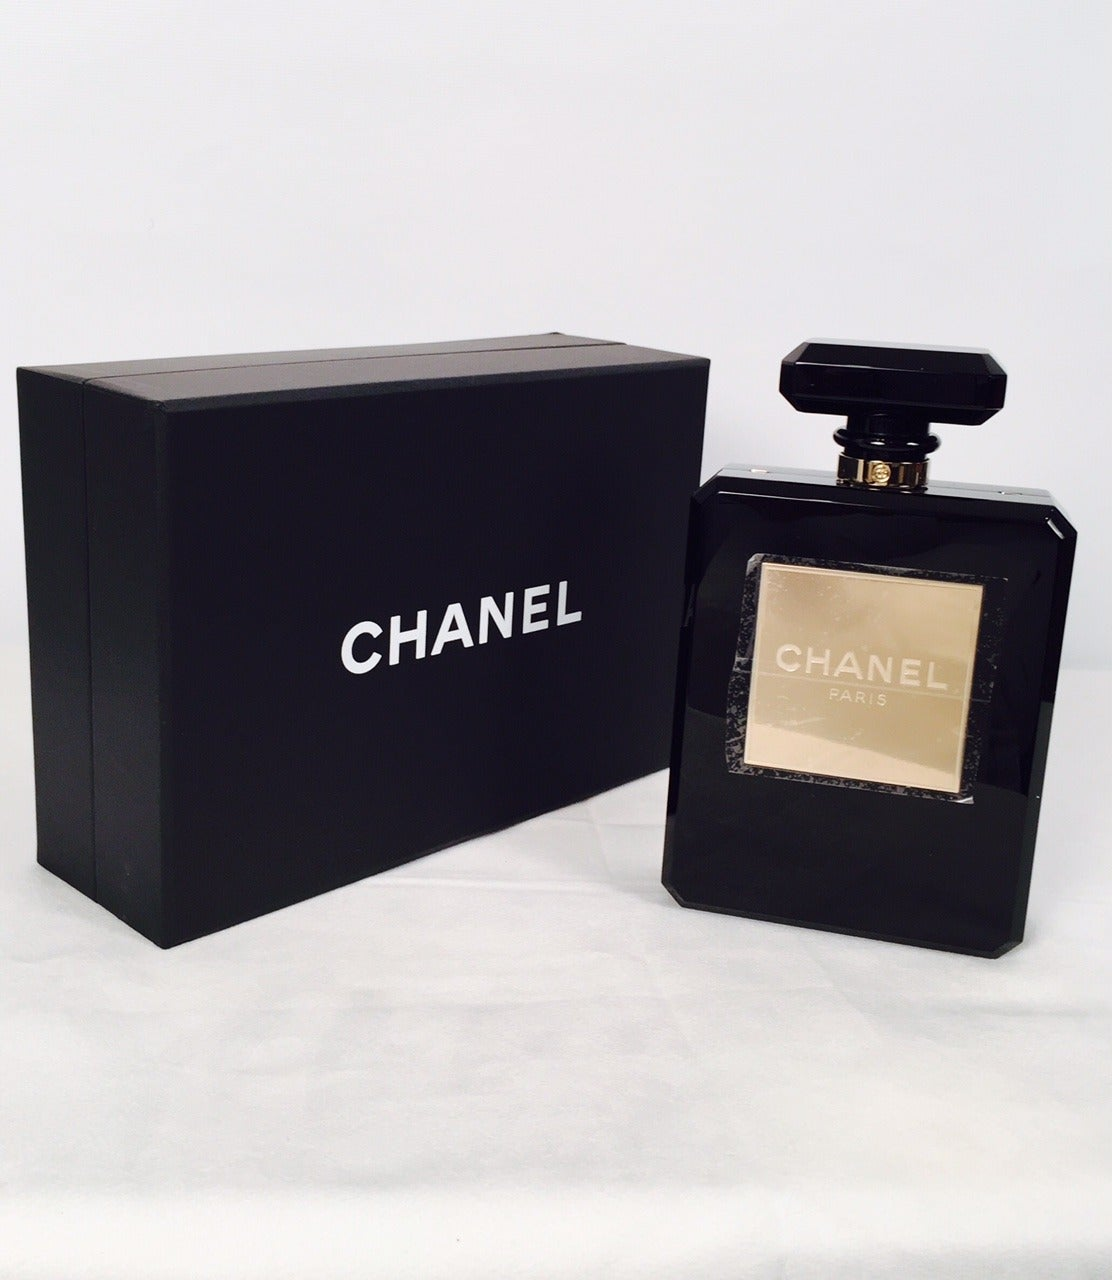 Brand New Limited Edition Chanel Perfume Bottle Evening Bag No. 20247442 6